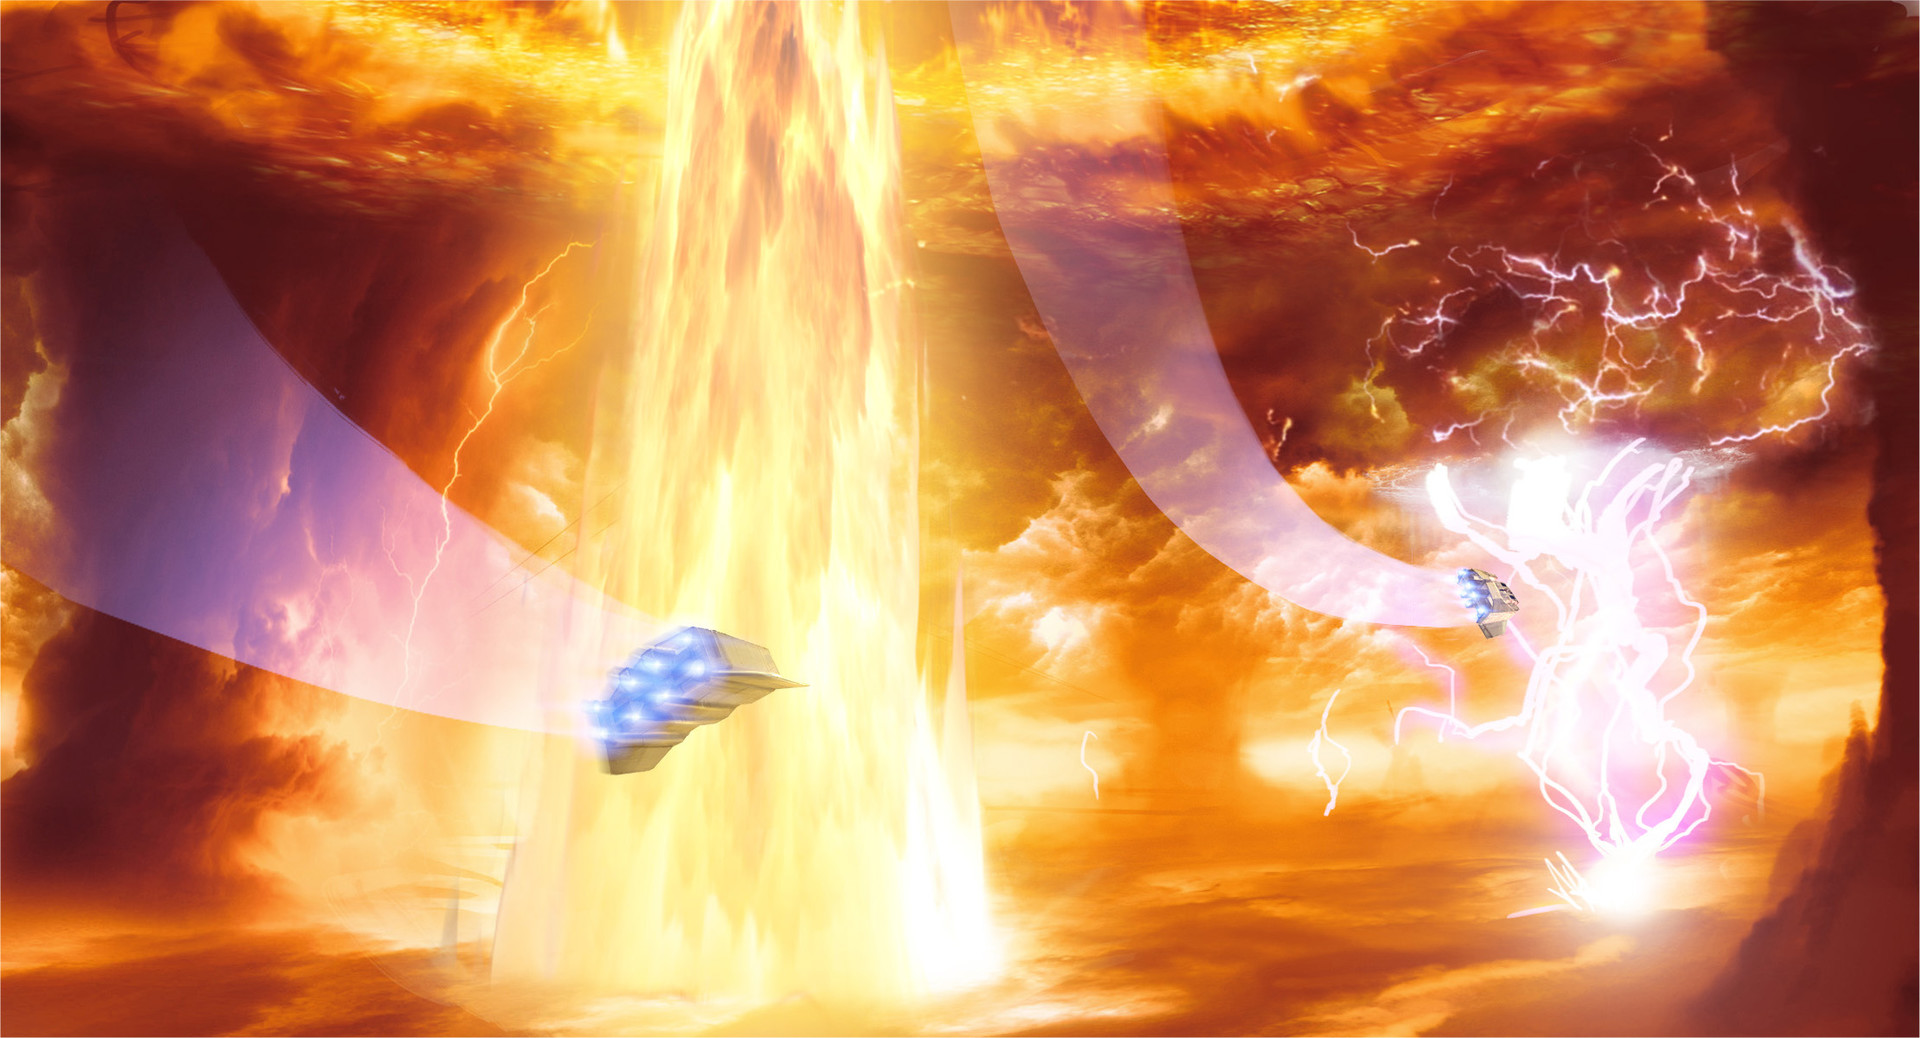 –And a flare of liquid plasma bursts up from the crack, parting the clouds above on its way into space. More storms erupt around us and our ships lurch as we take evasive action.